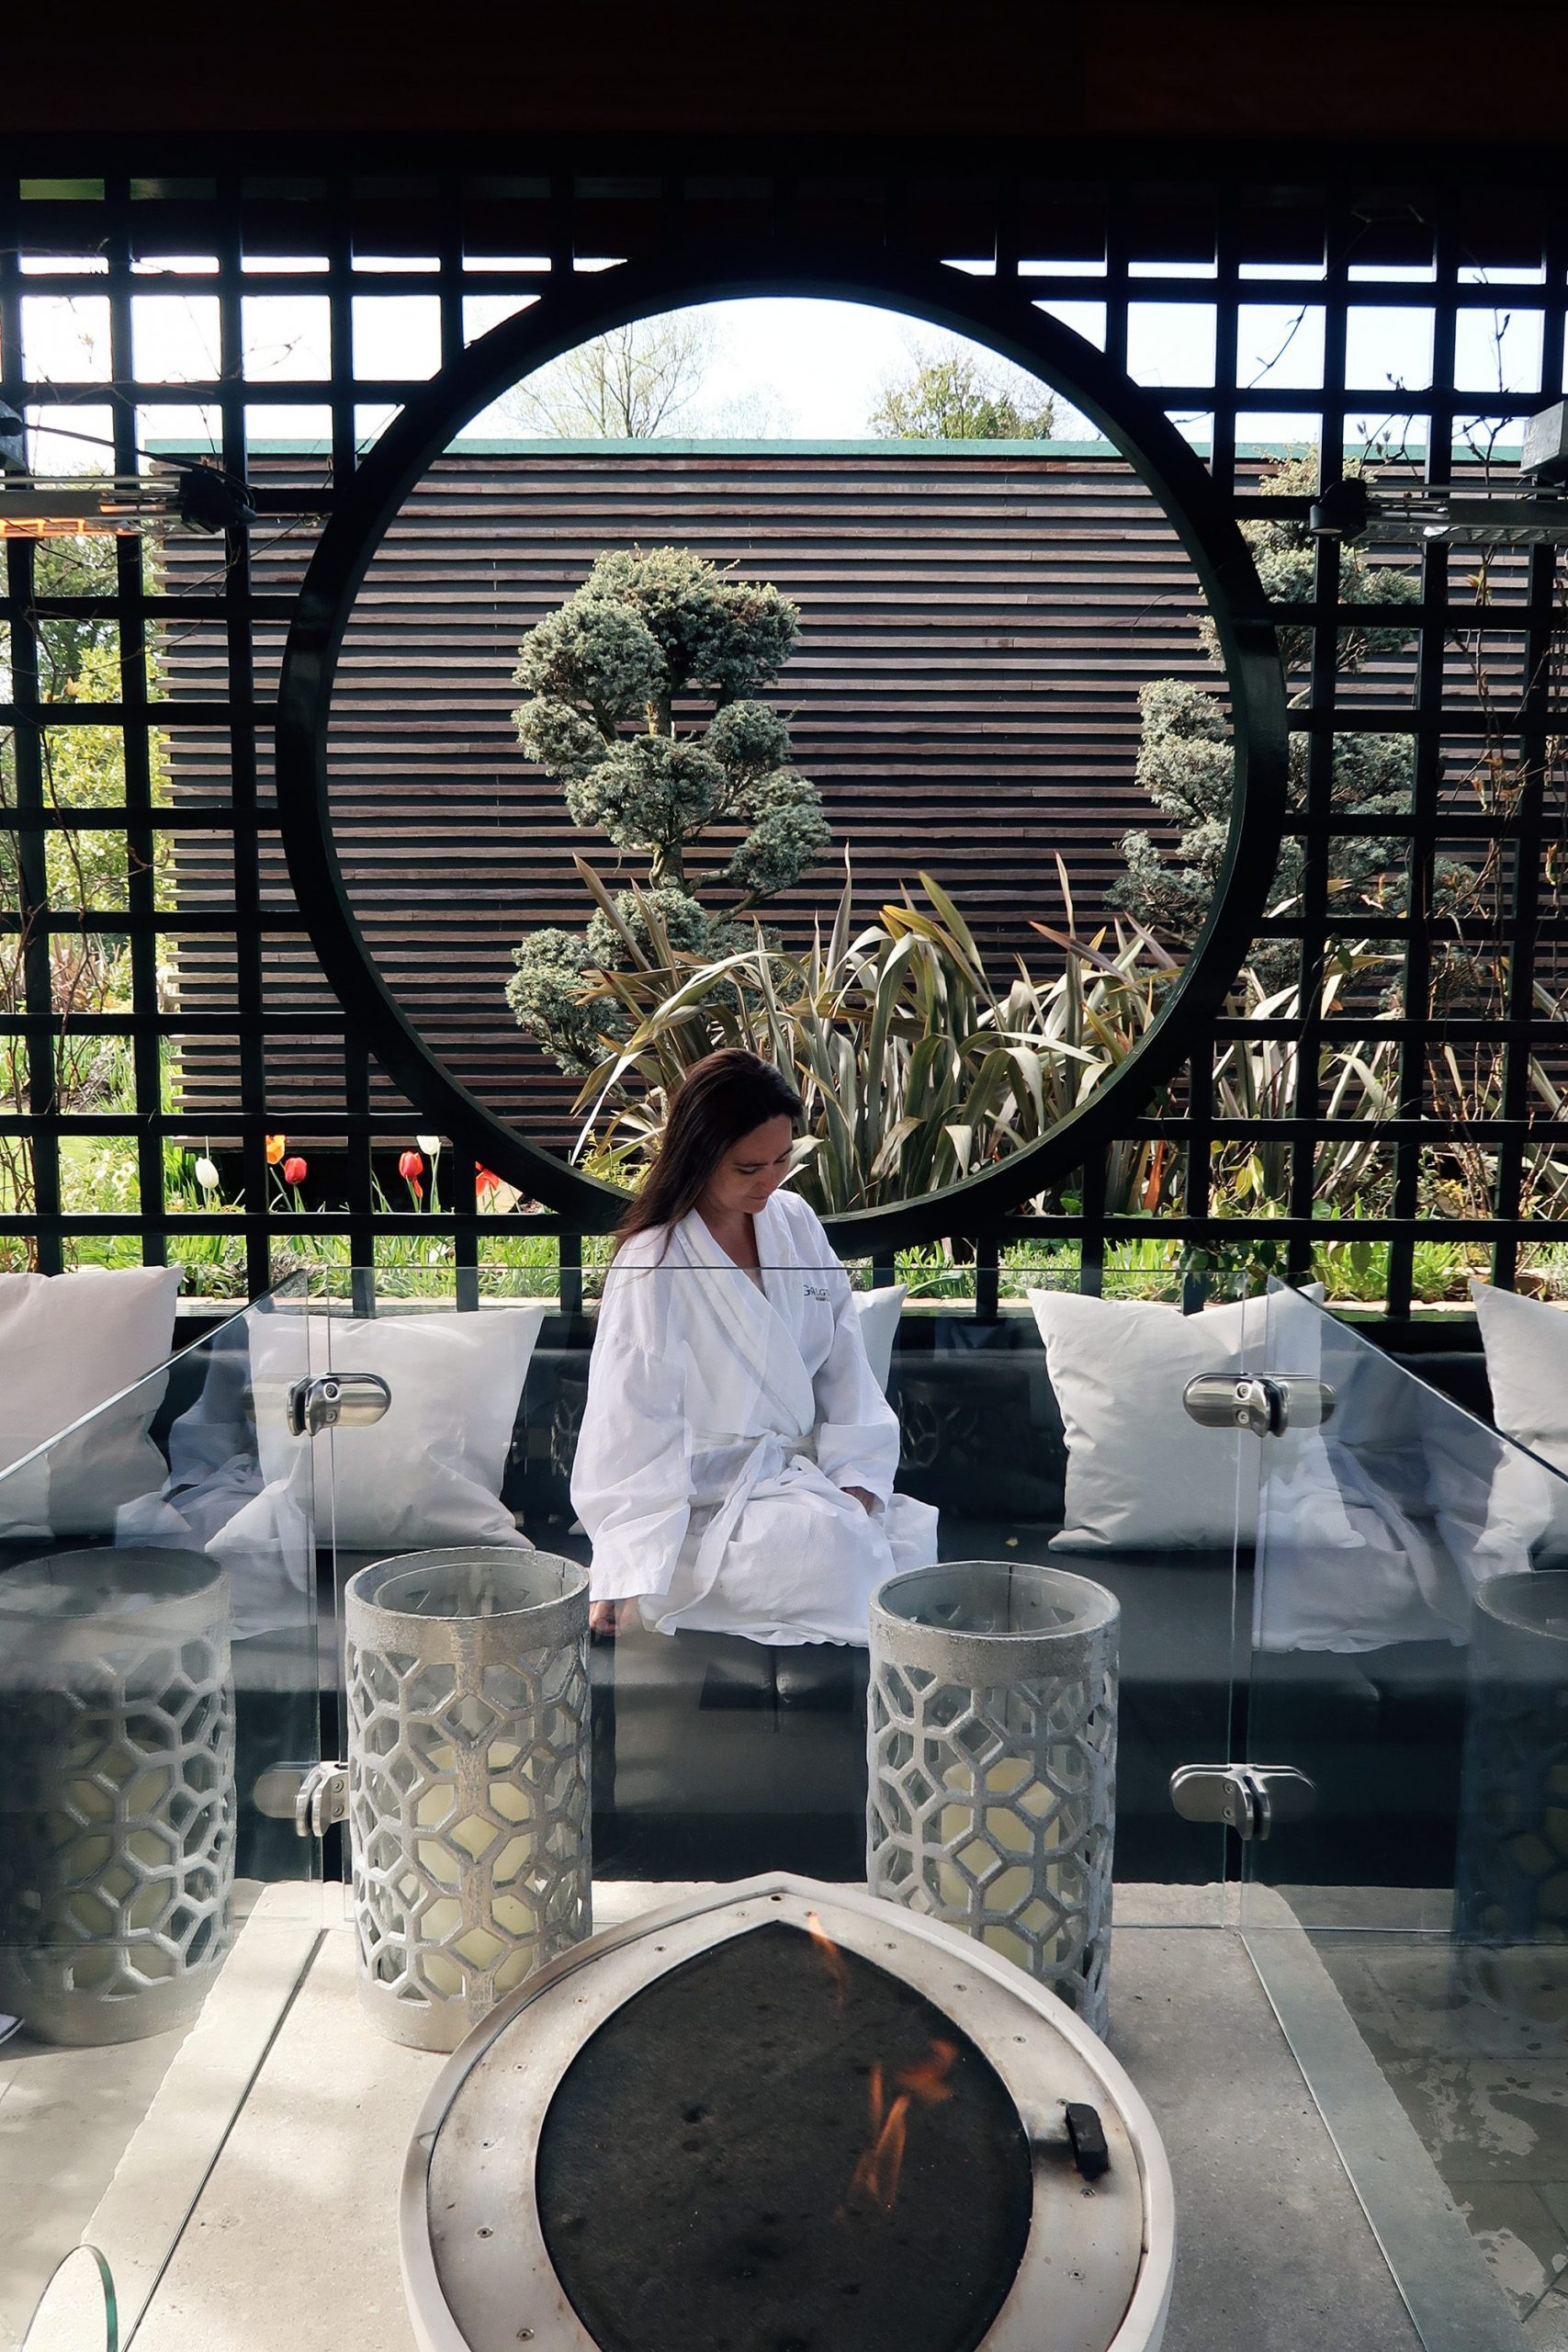 Woman in white spa robe snuggling up on outdoor sofas by the fire pit